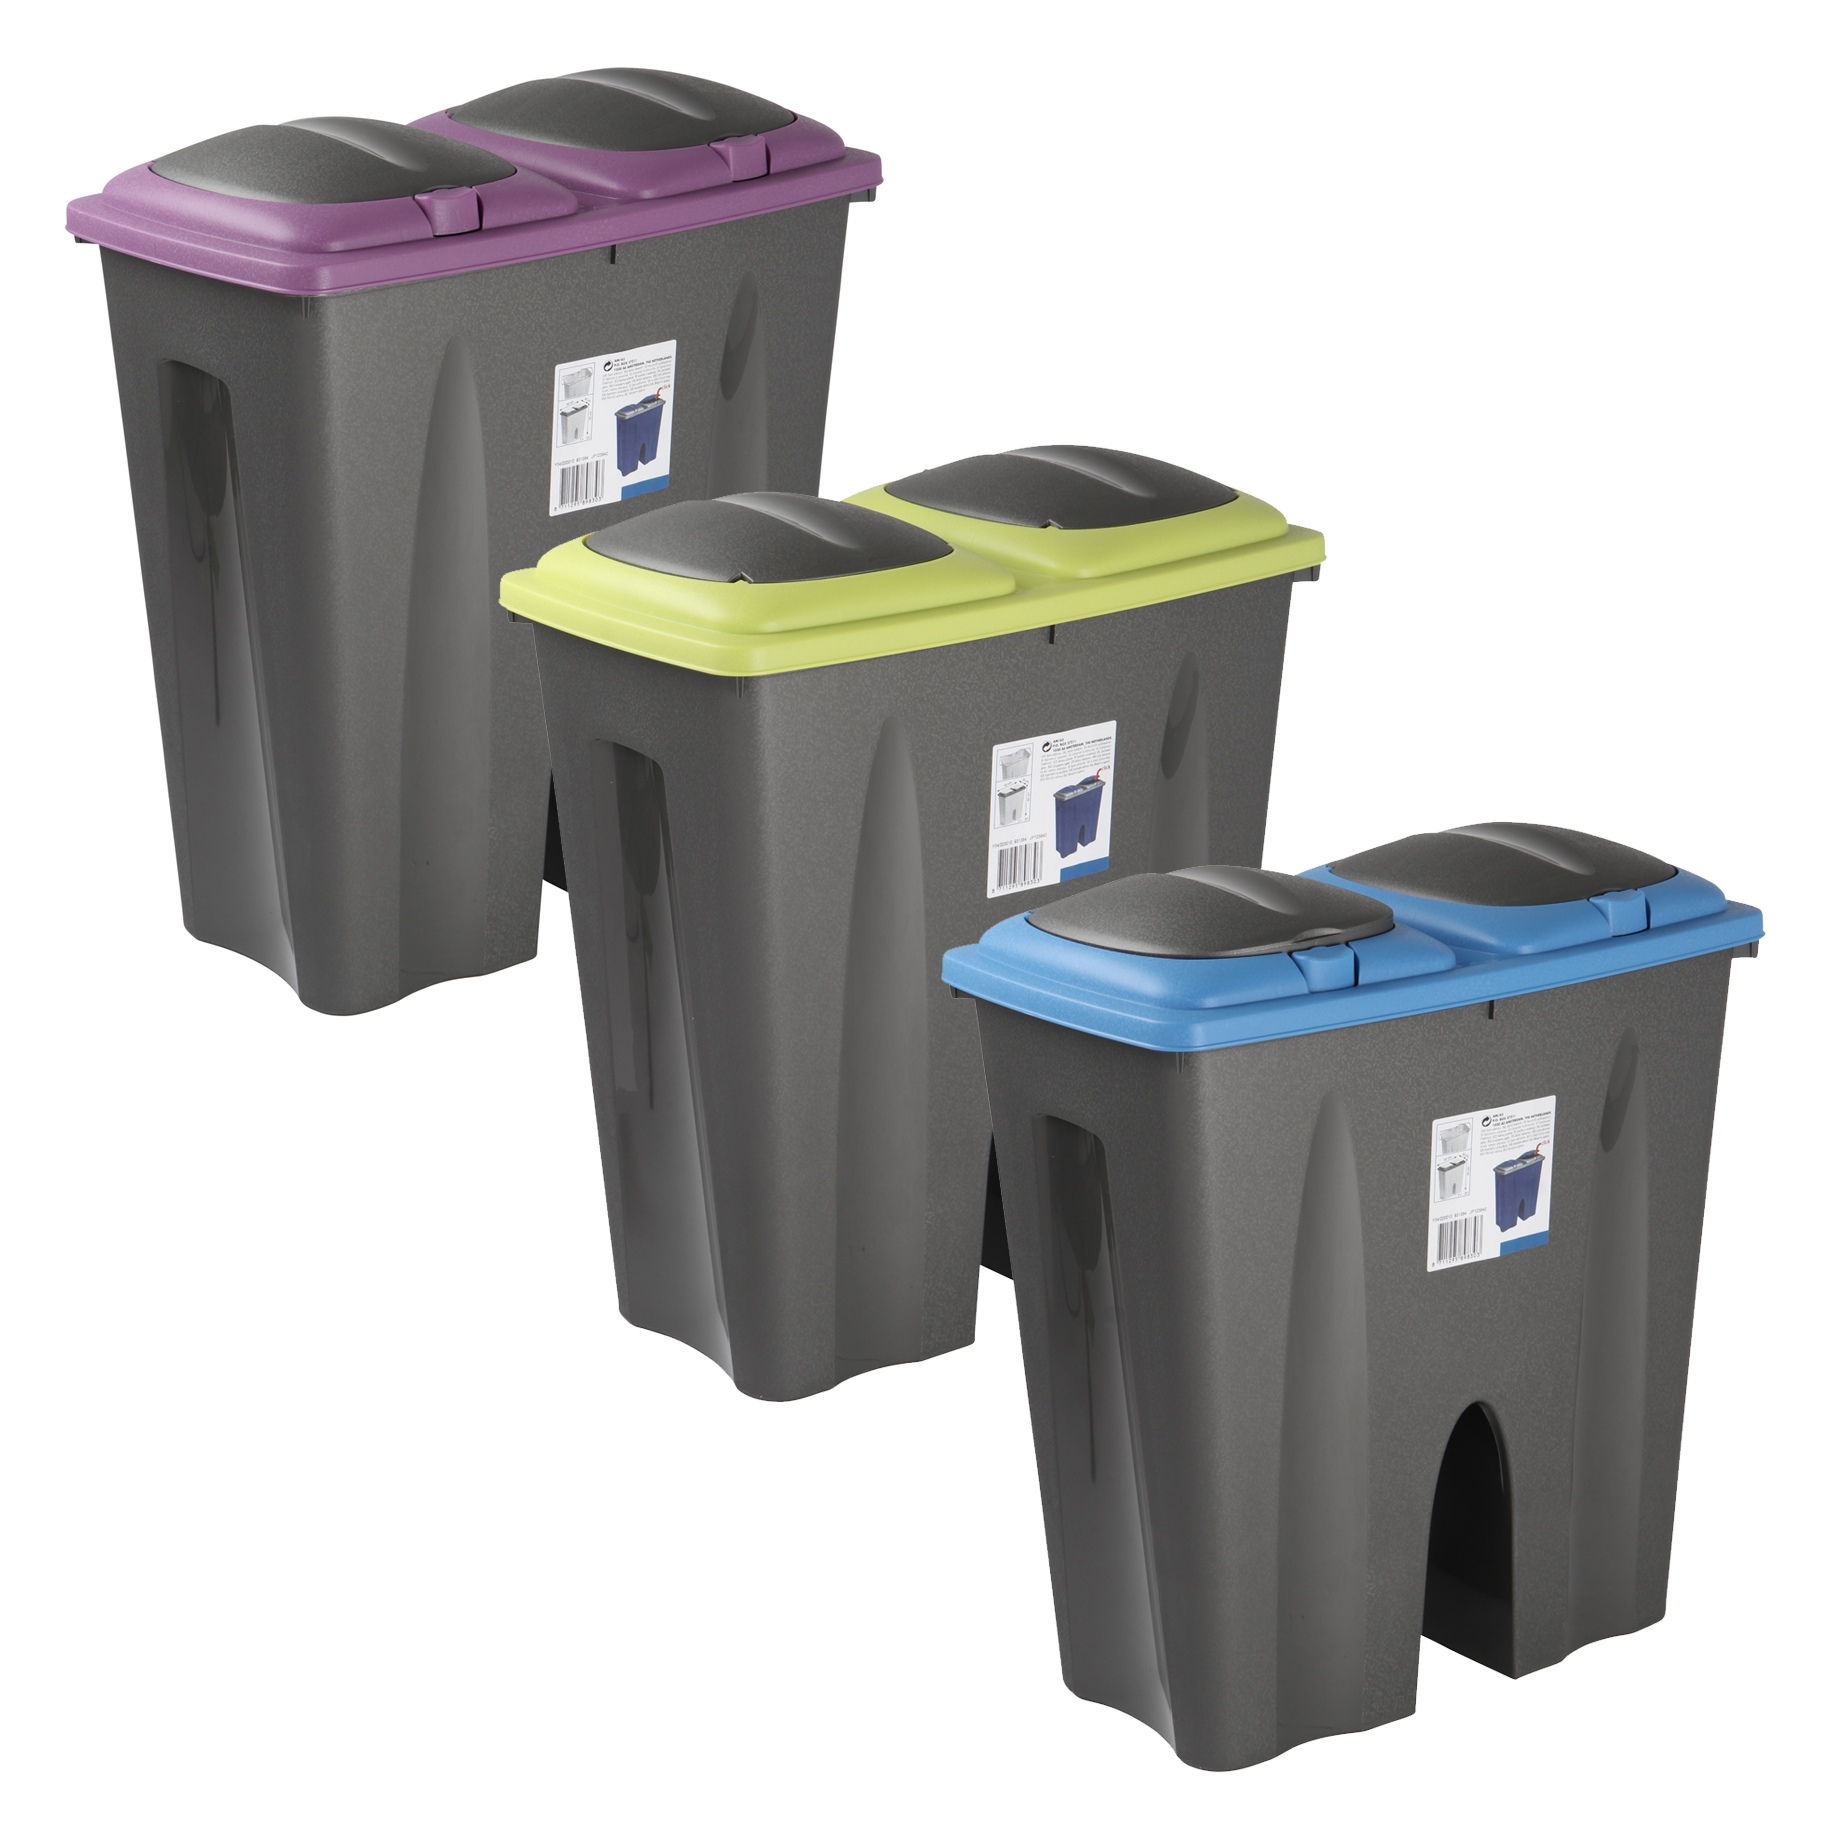 small recycling bins for kitchen kohler faucets double waste bin duo rubbish plastic cardboard